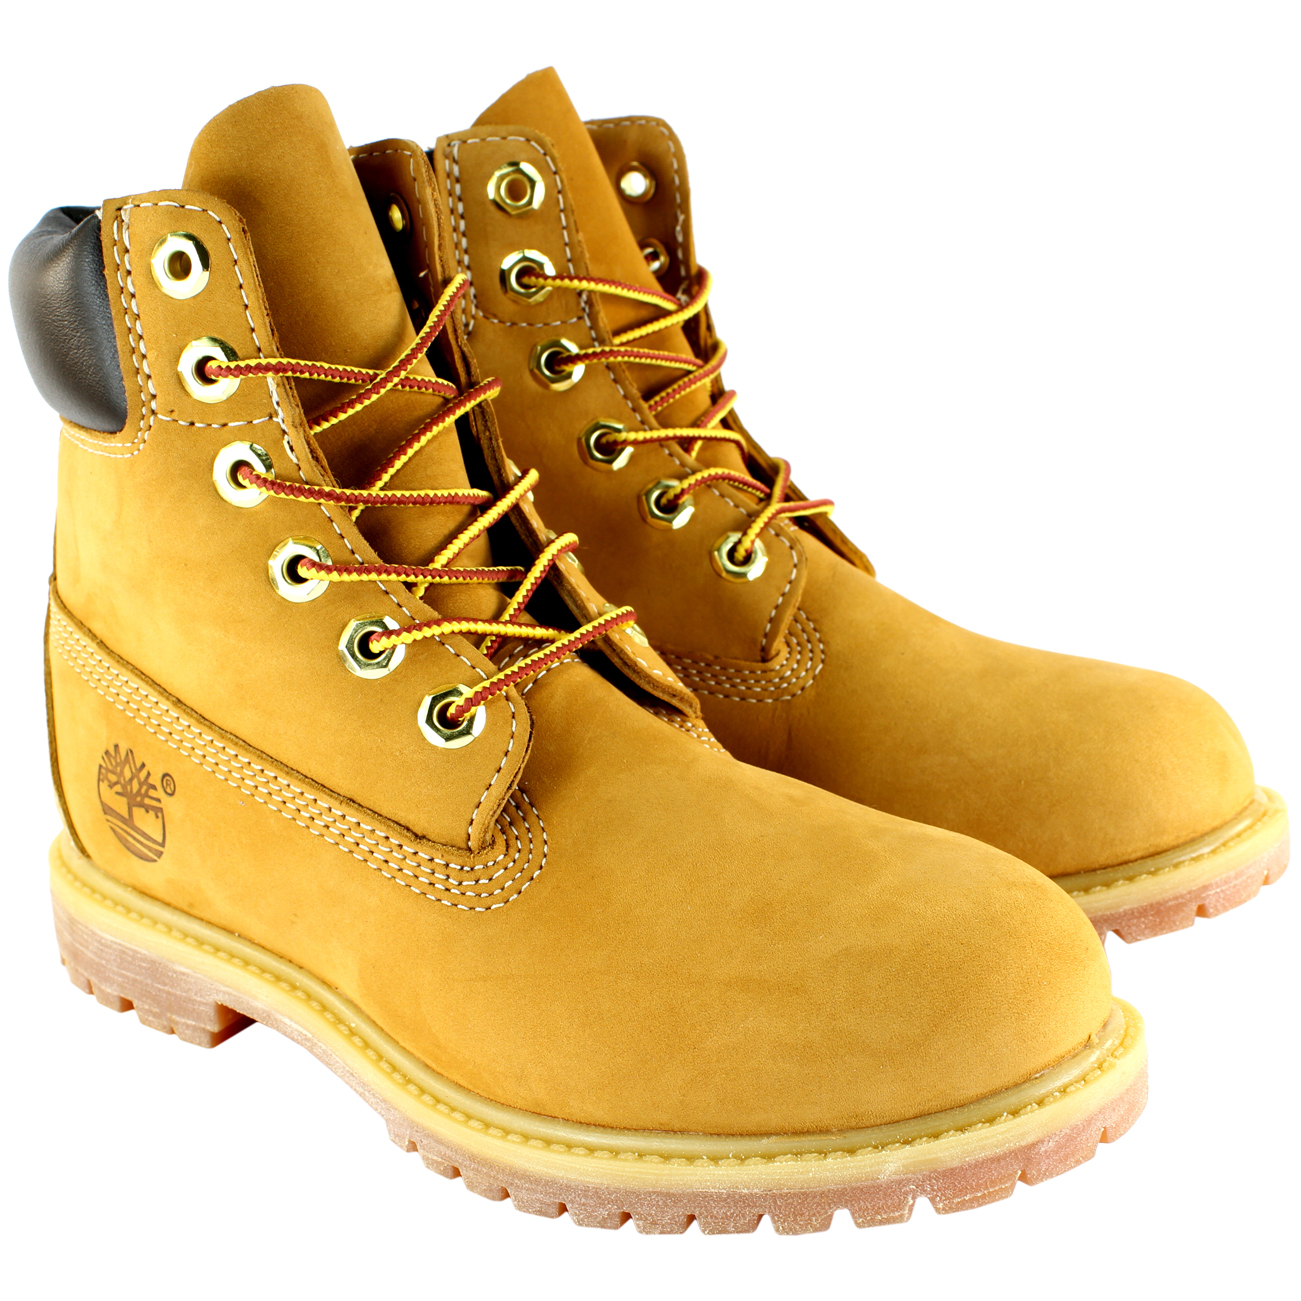 "Timberland 6"" Premium Ankle Boots"